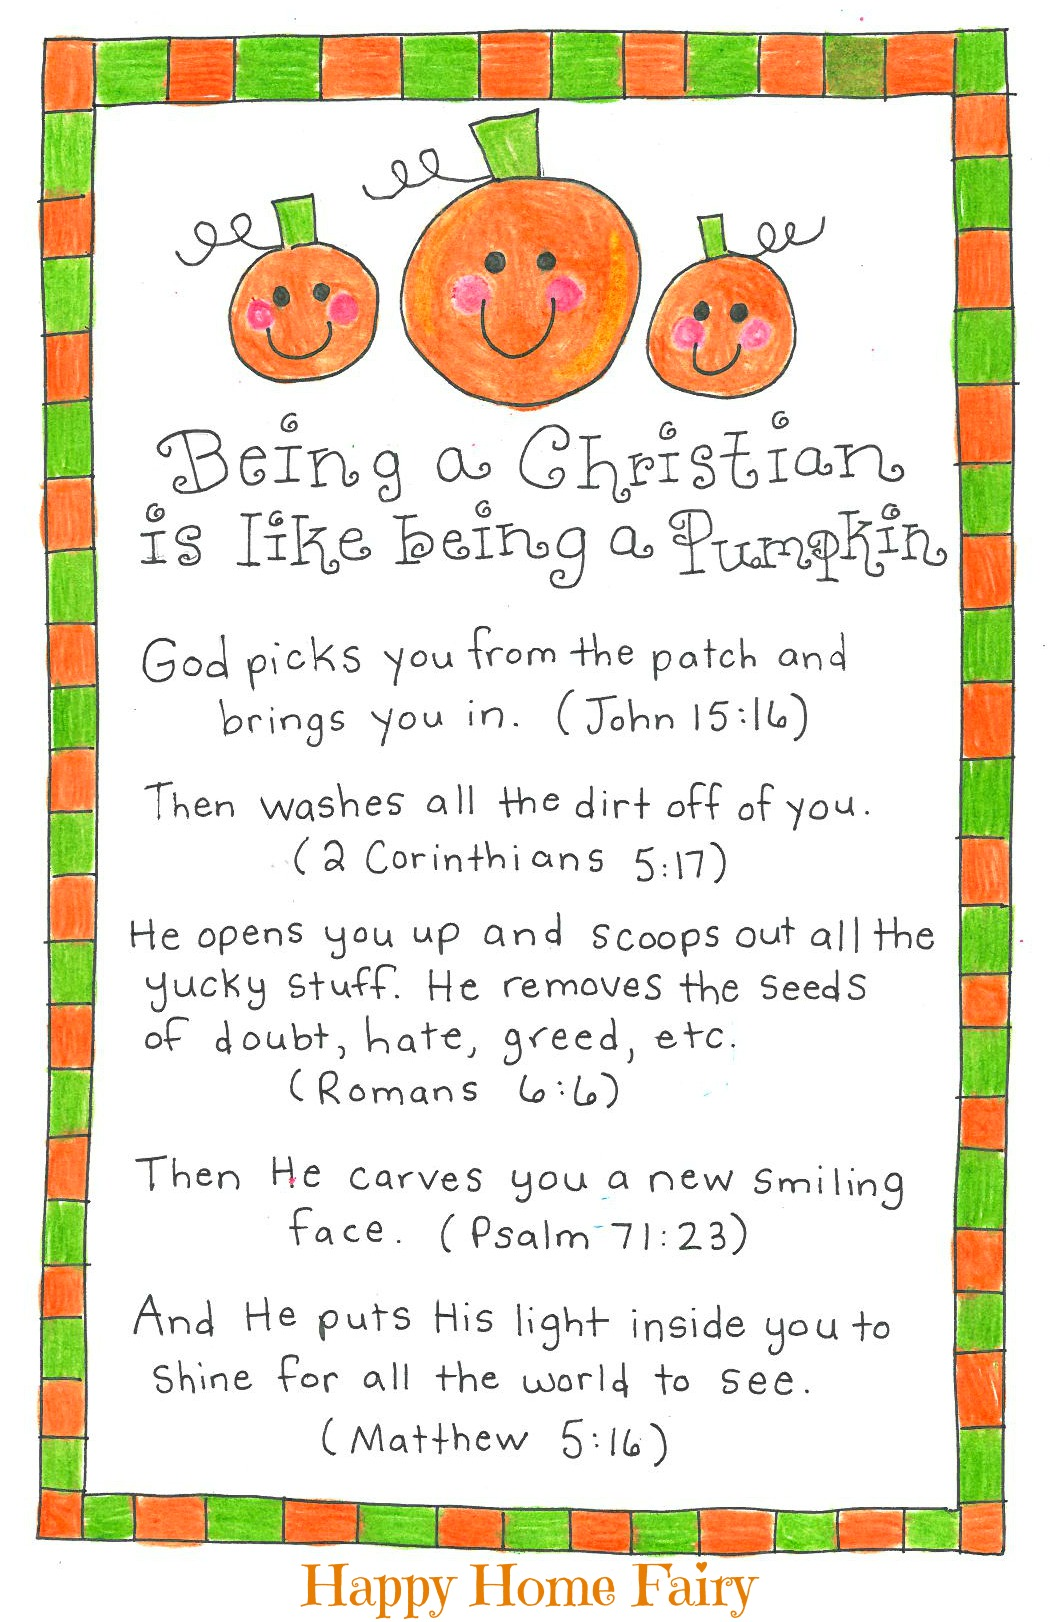 photo regarding Pumpkin Gospel Printable referred to as Becoming a Christian Is Together with Becoming a Pumpkin - No cost Printable